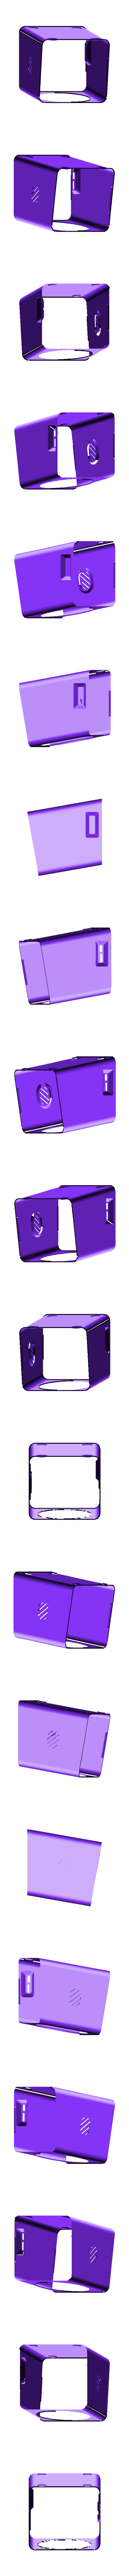 pyplant-frame.stl Download free STL file Smart IOT Pet Planter • Template to 3D print, Adafruit